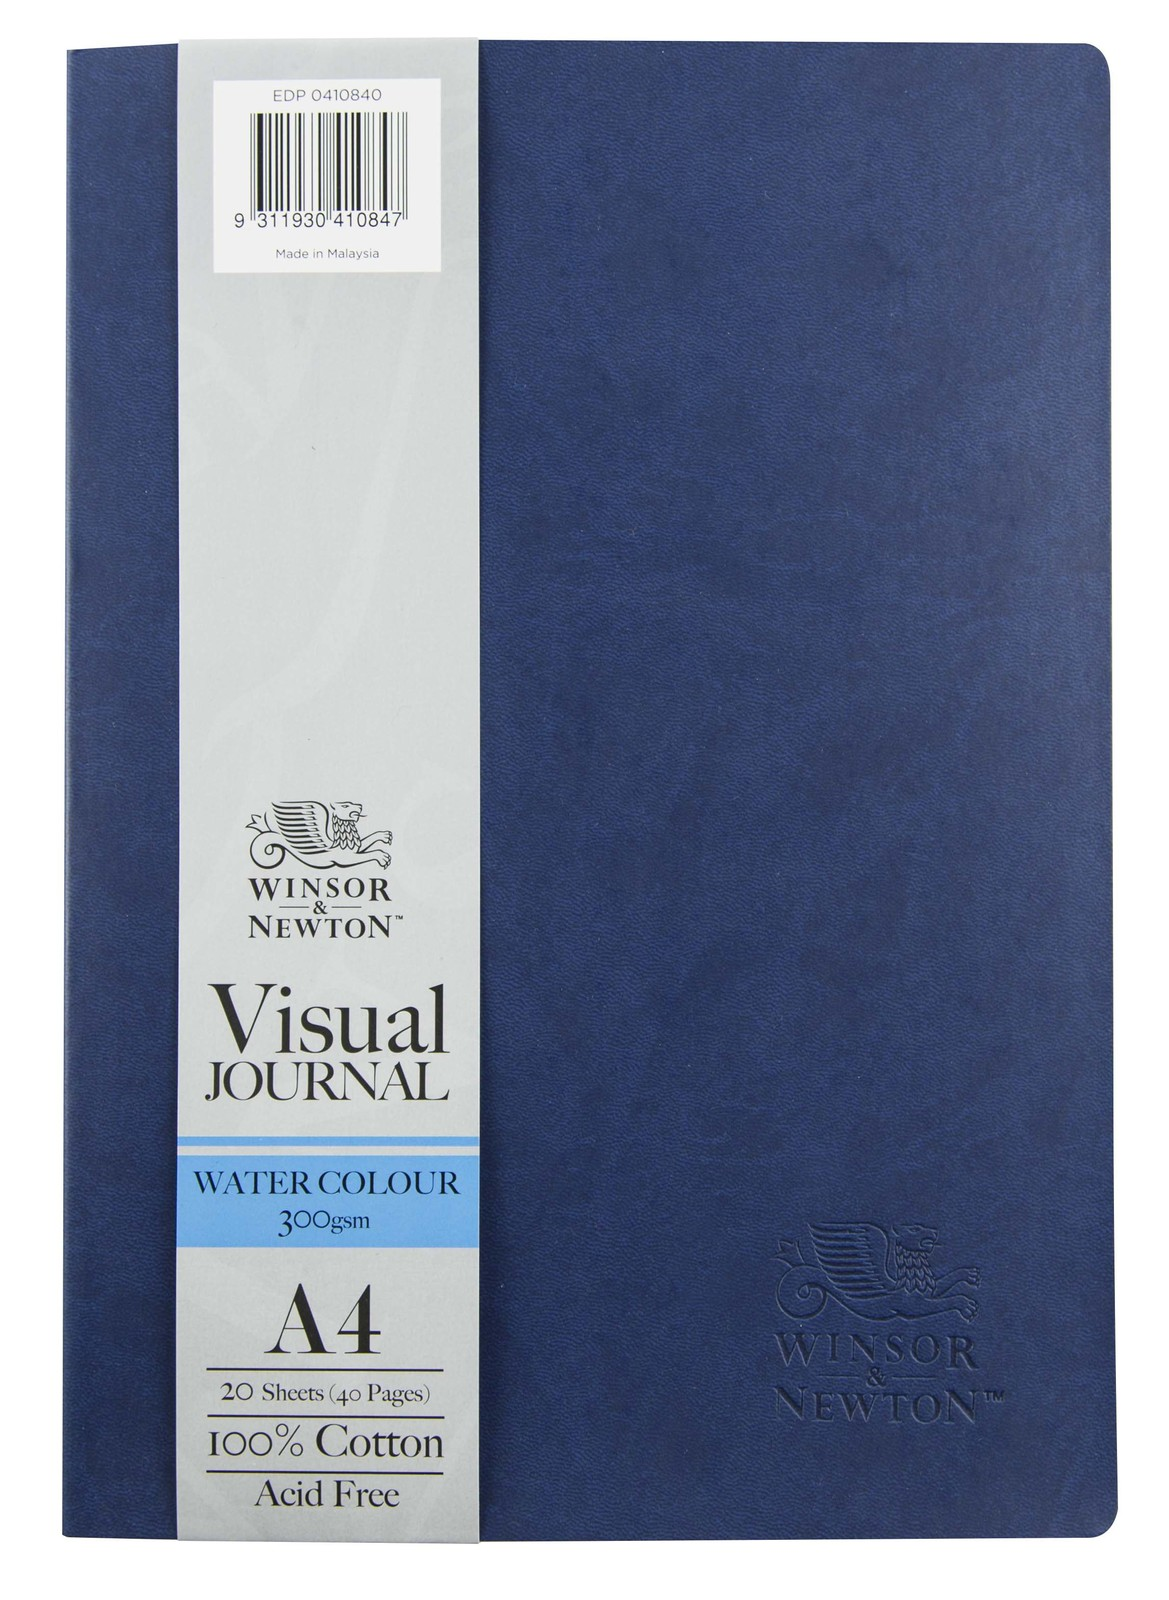 Winsor & Newton: Softcover Watercolour Journal - A4 (300gsm) image